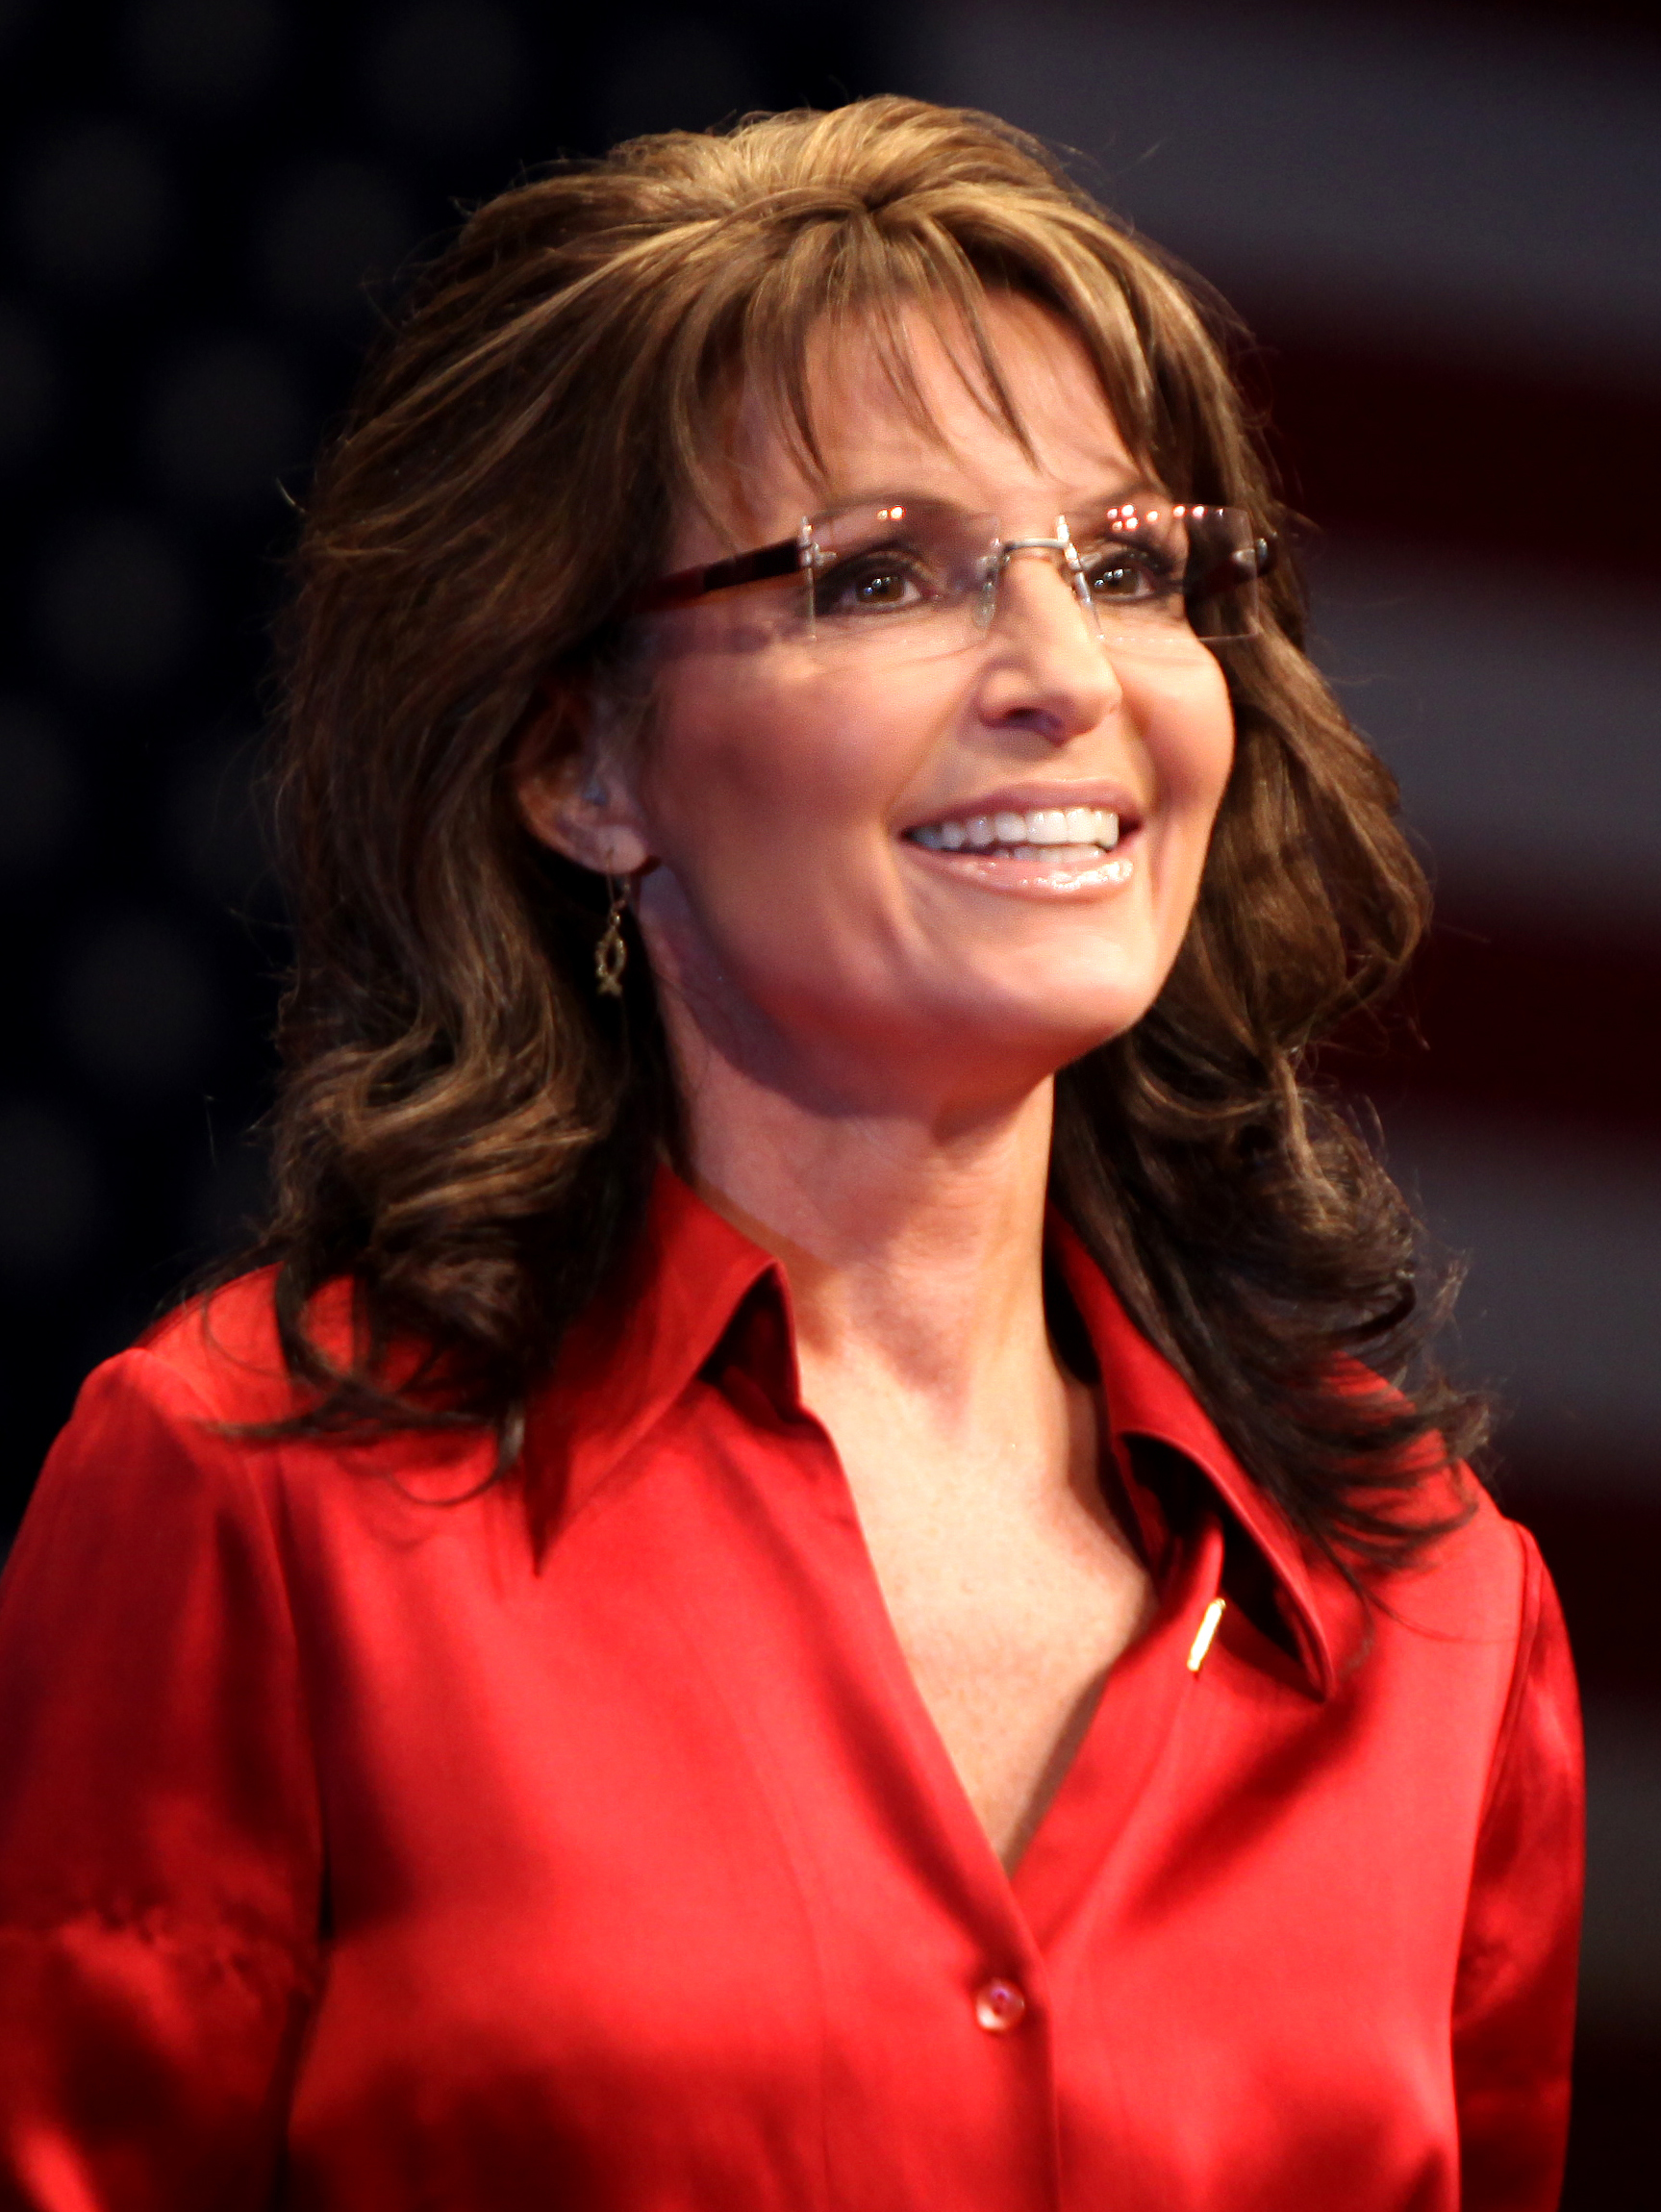 The 57-year old daughter of father Charles R. Heath and mother Sarah Heath Sarah Palin in 2021 photo. Sarah Palin earned a  million dollar salary - leaving the net worth at 12 million in 2021